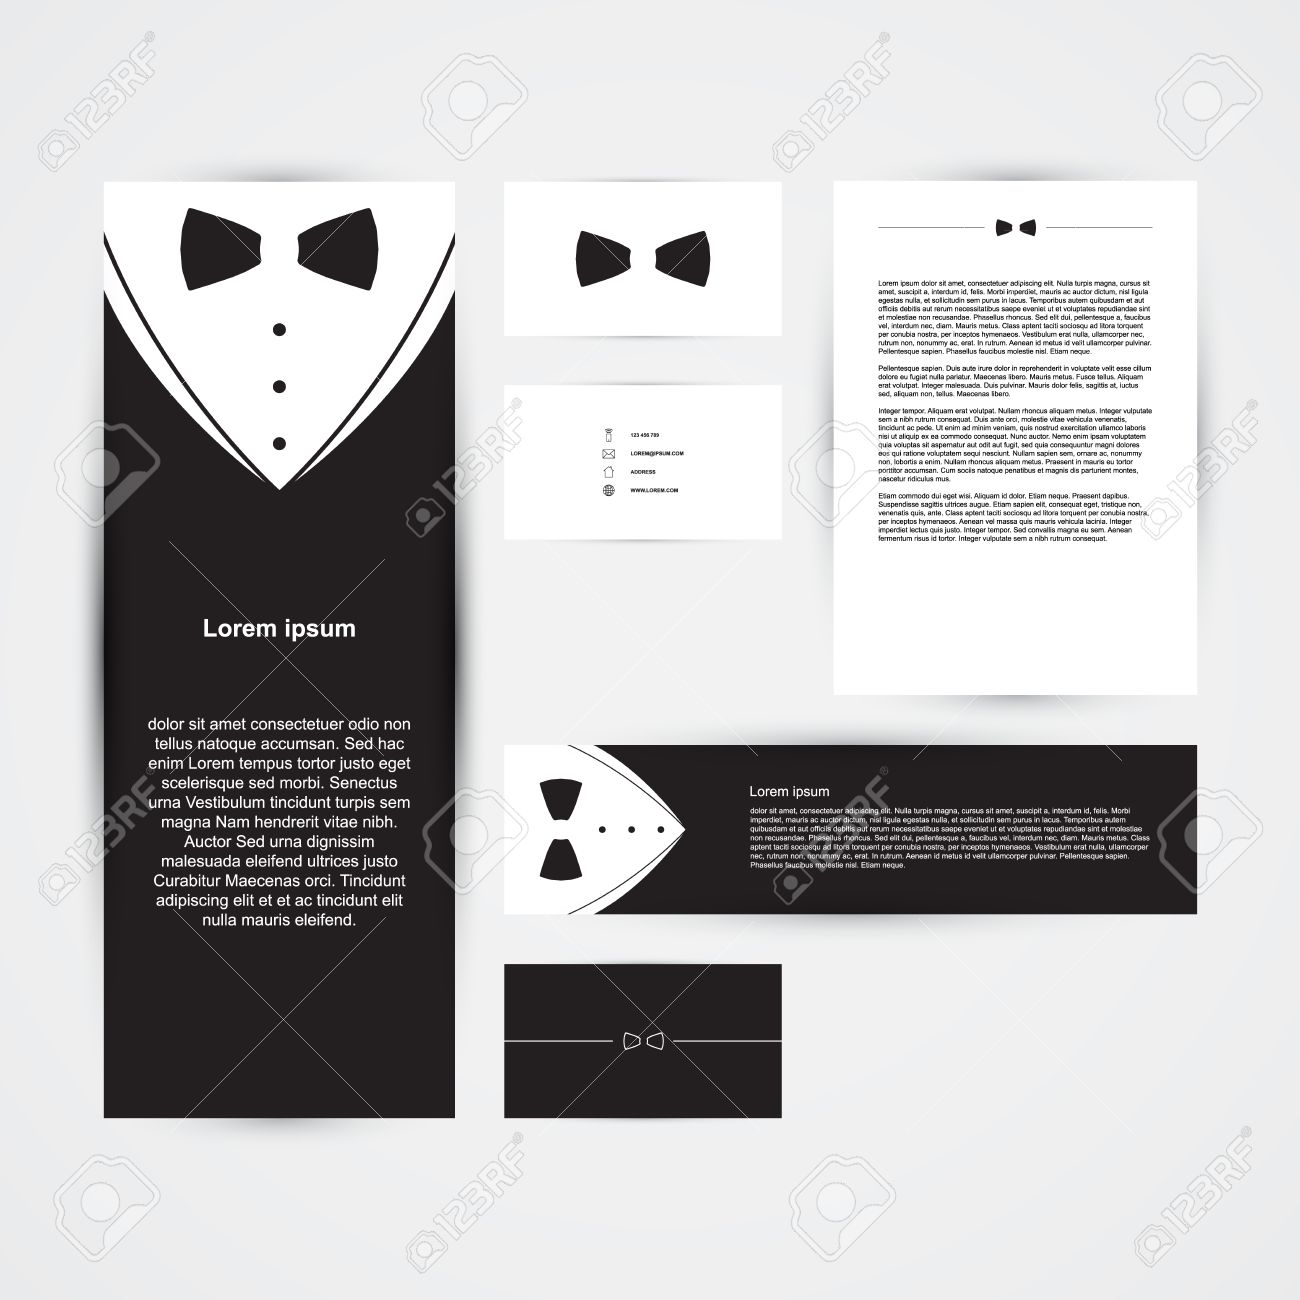 Invitation template black design with bow tie business card invitation template black design with bow tie business card banner vector illustration stopboris Image collections